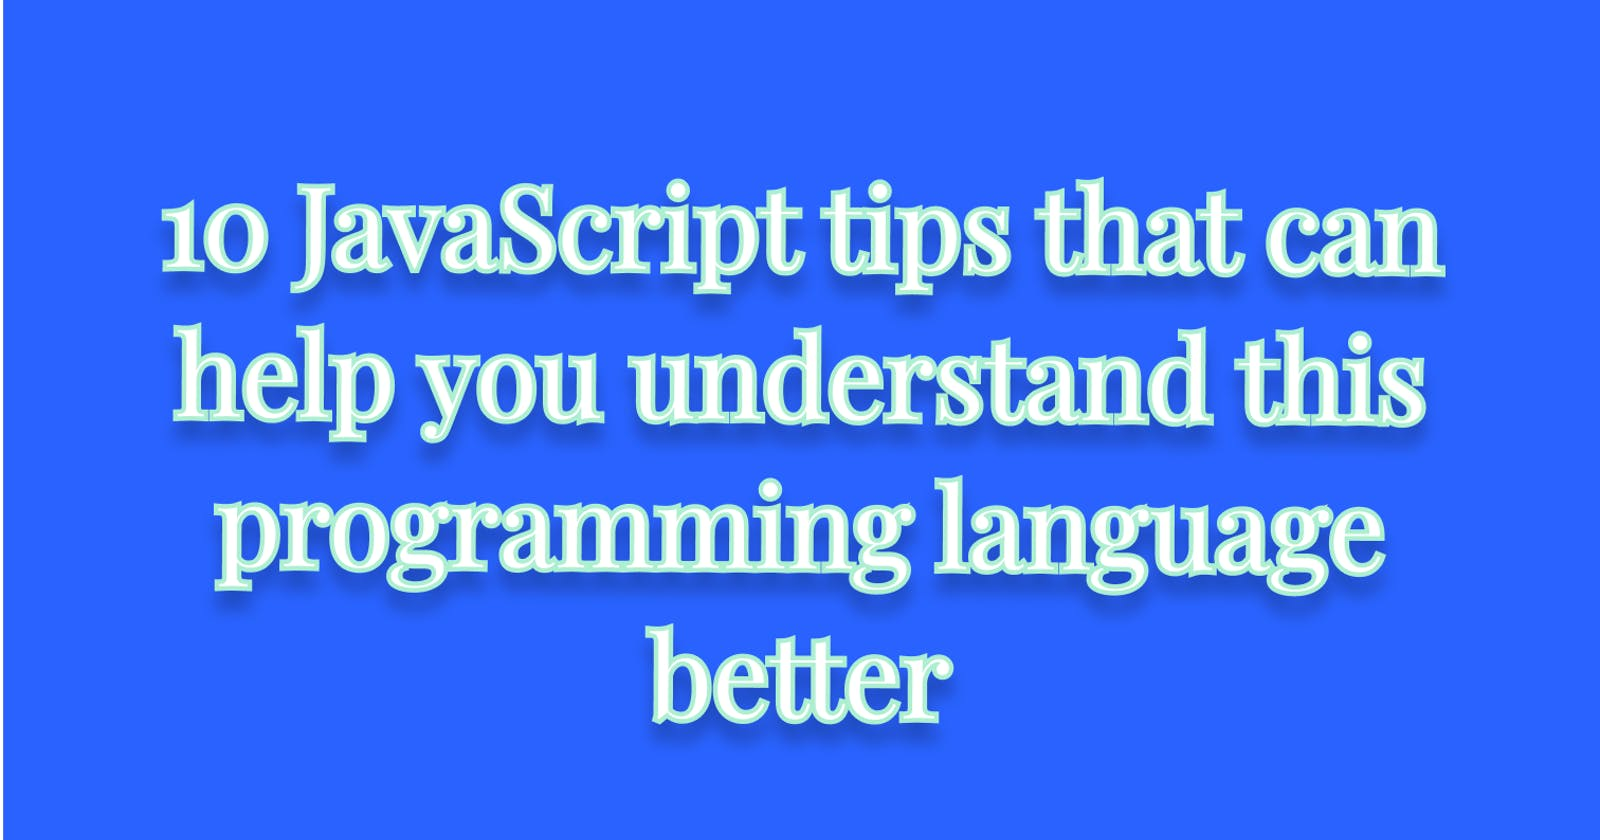 10 JavaScript tips that can help you understand this programming language better